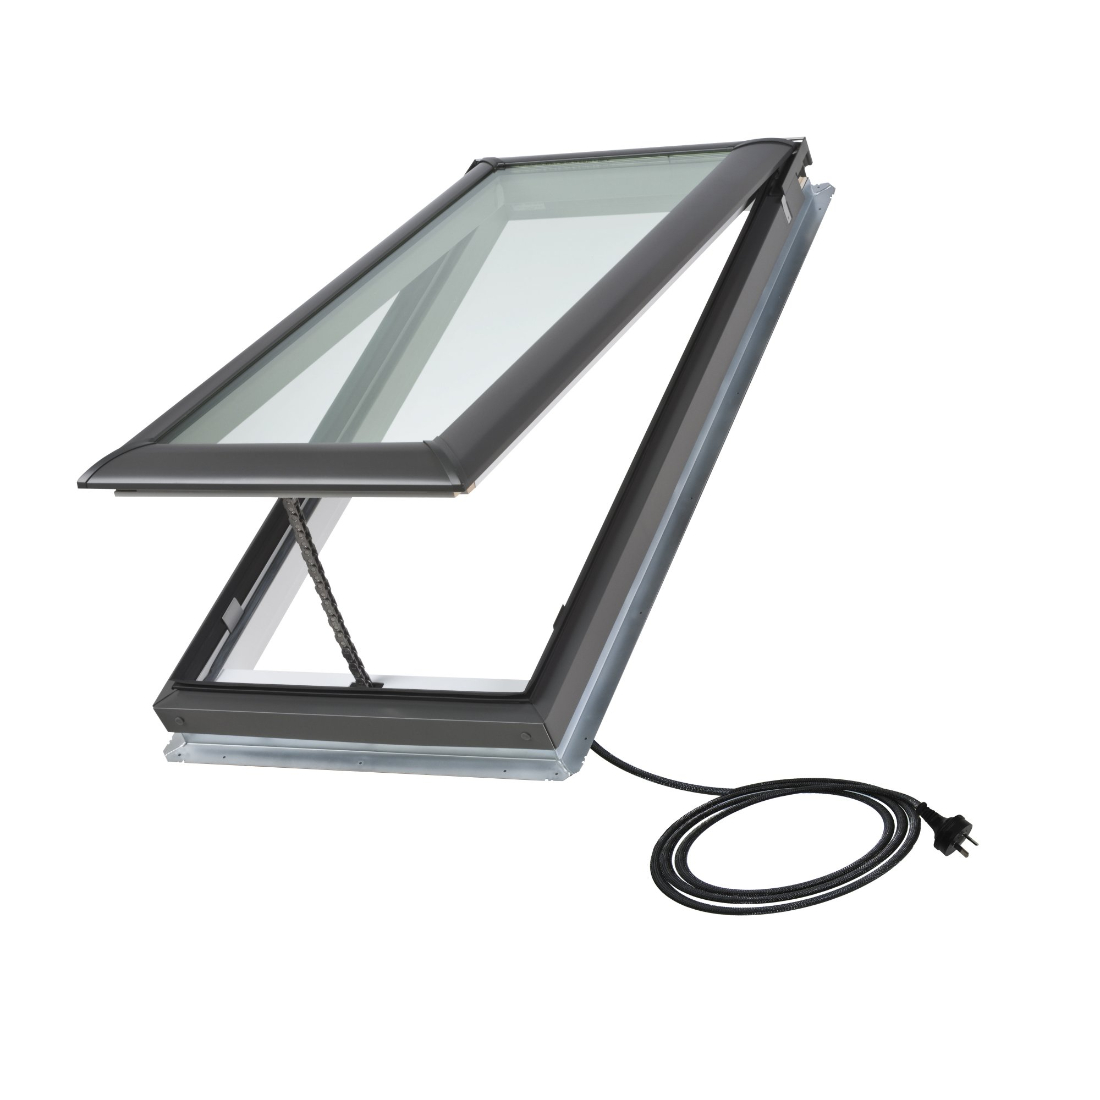 Electric Opening Skylight 1140 x 1180mm